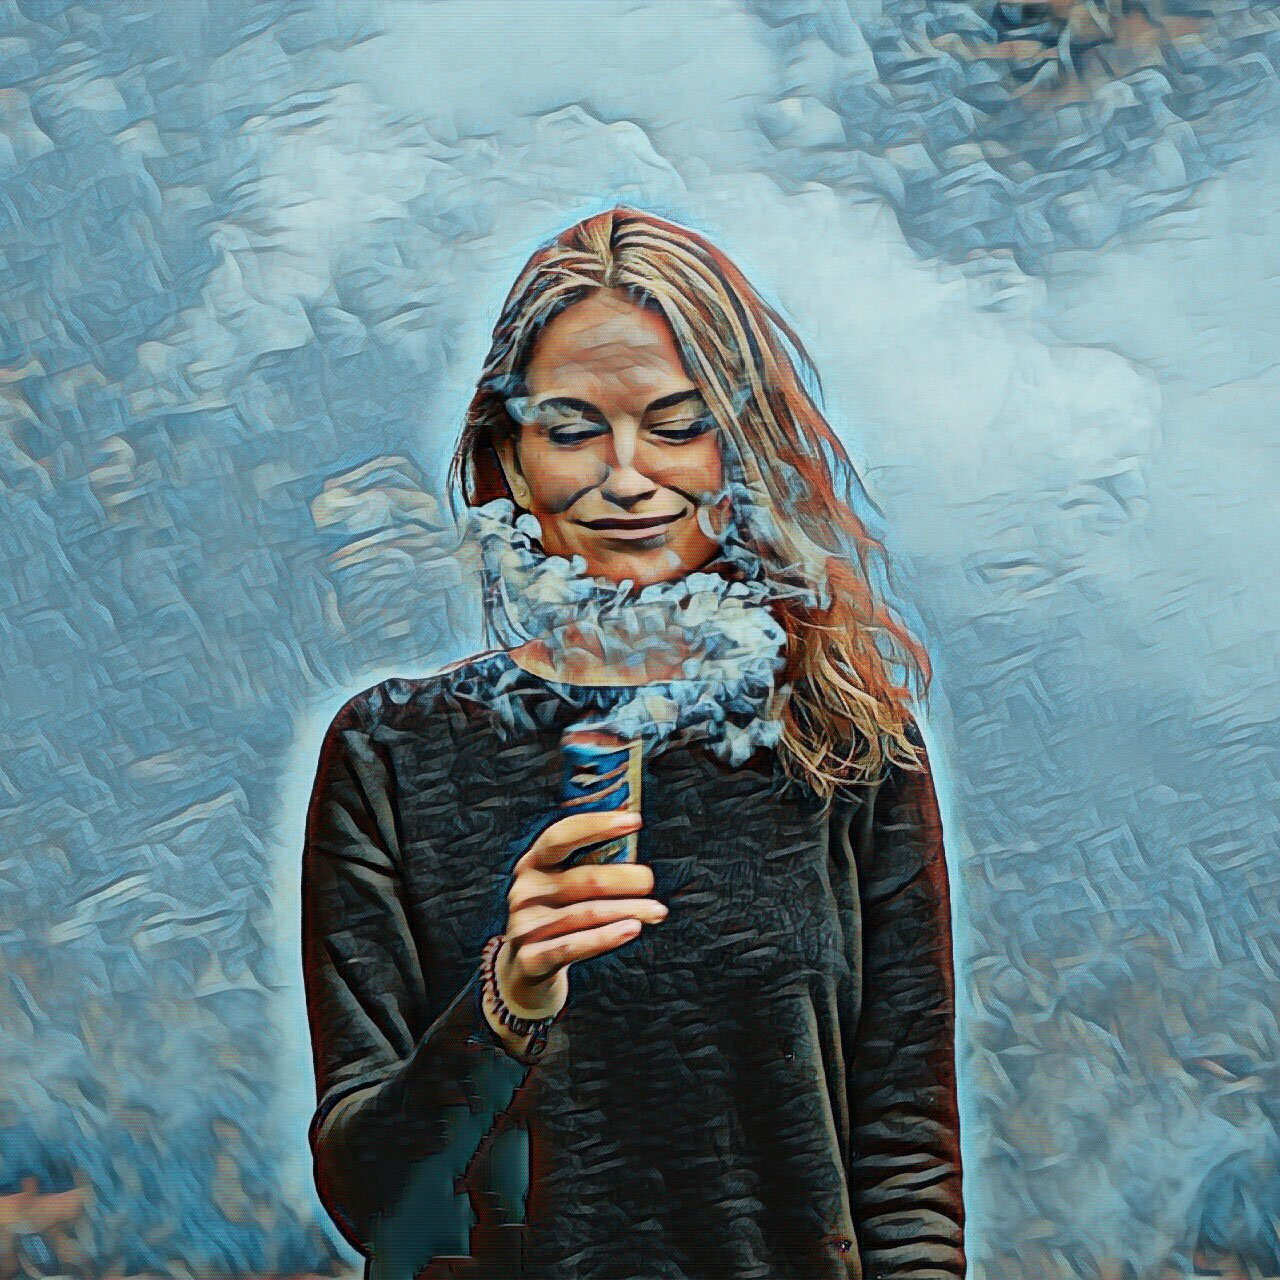 Deep Art Effects: Be an artist! Turn your photos into awesome artworks